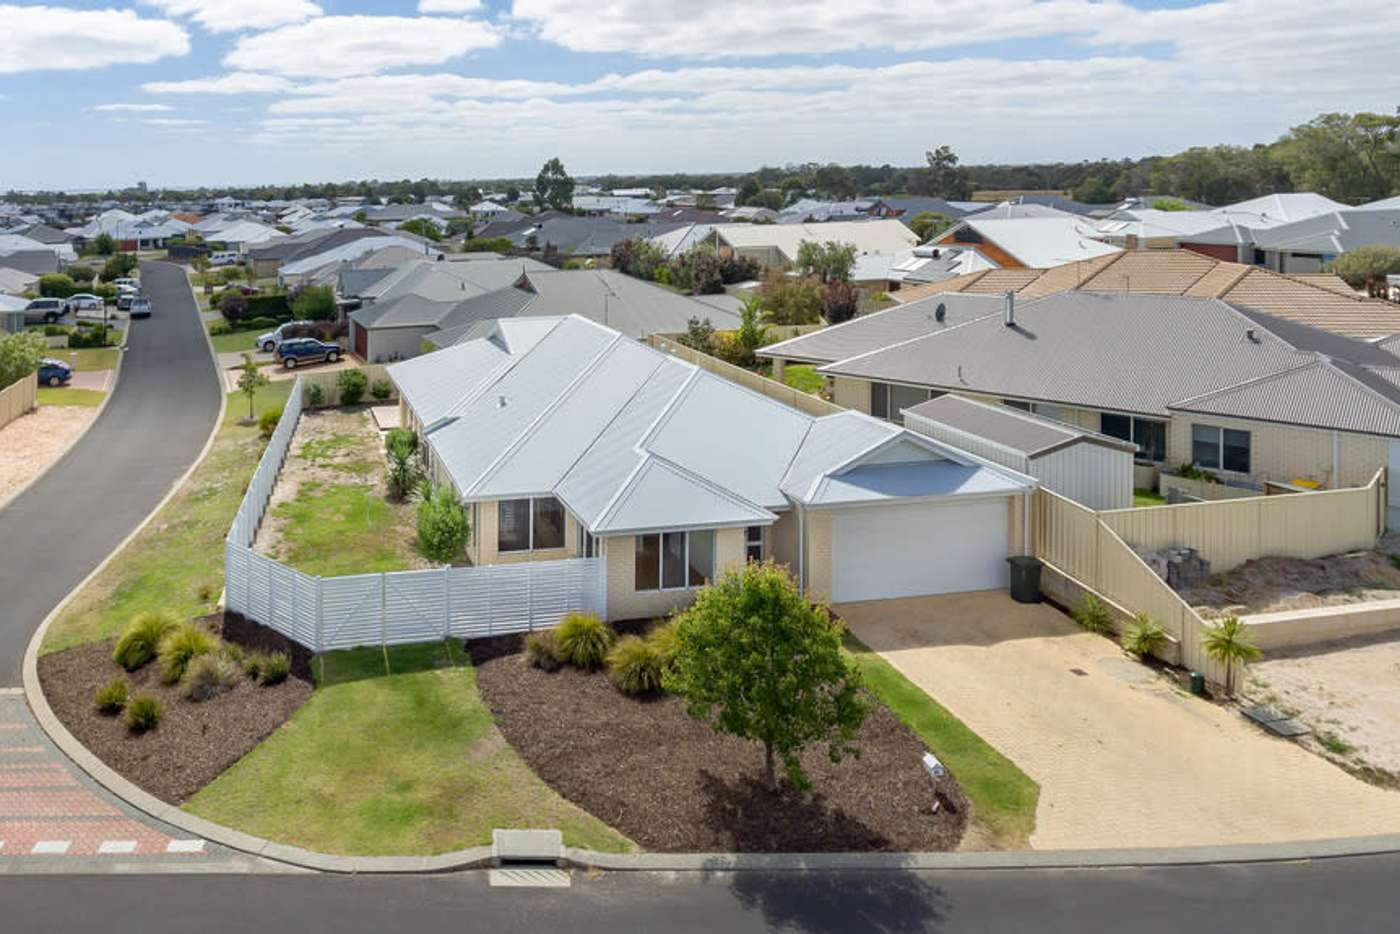 Main view of Homely house listing, 37 Monclair Circuit, Dunsborough WA 6281